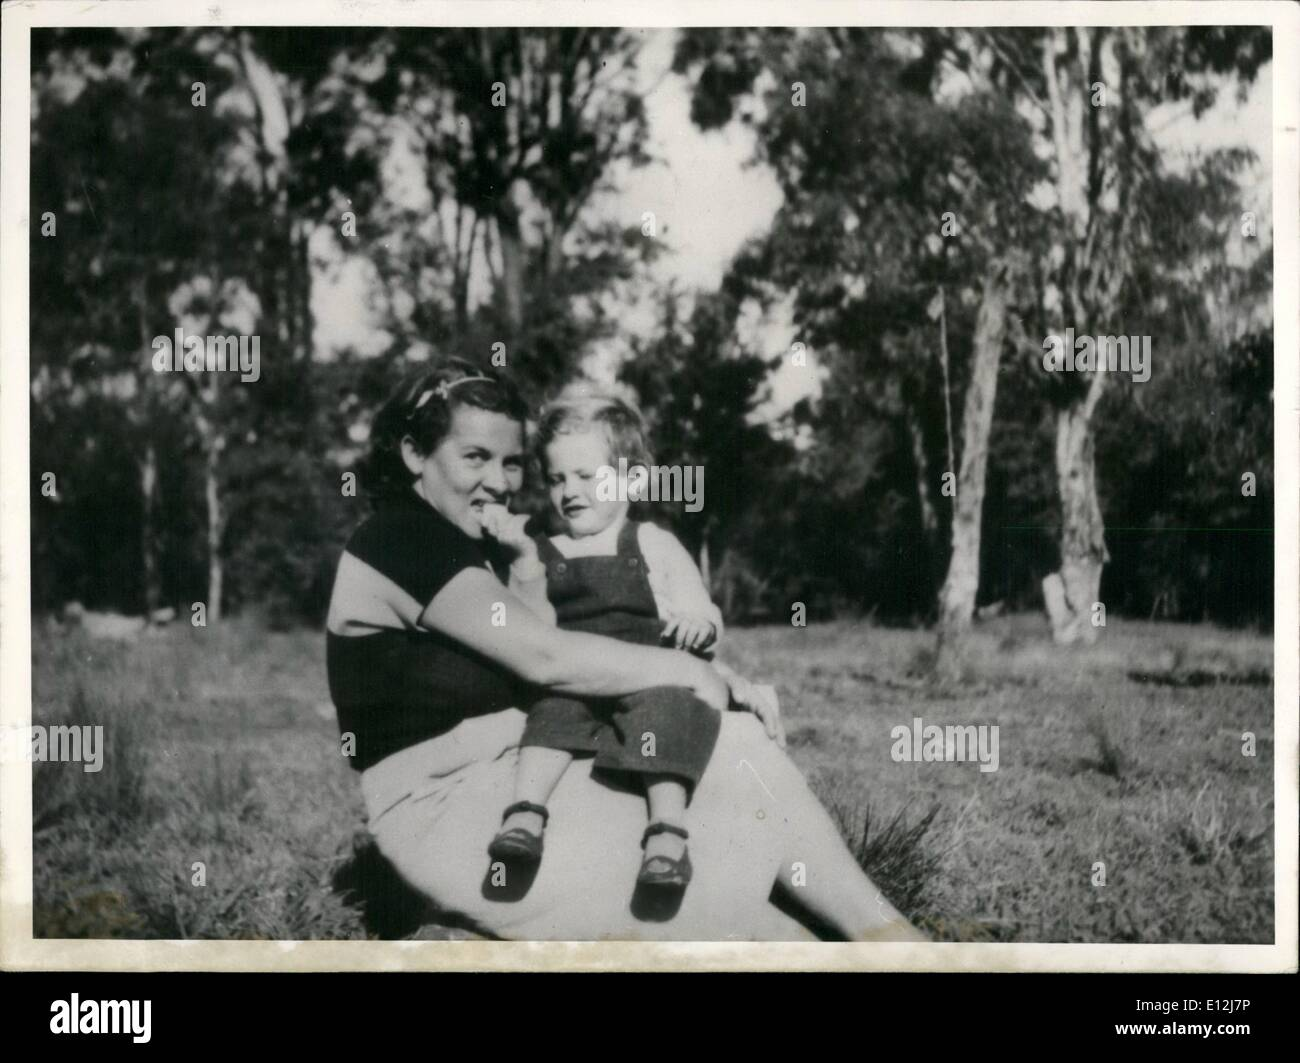 Feb. 24, 2012 - Last Wish of a German emigrant fulfilled; A wealthy Australian made it possible for a woman born in Germany to return to her home country by giving her the amount of 530 Australian pounds. Thus she was able to bring her two children to her parents - and can die in her home country. The now Mrs. Szewszik nee Mueller emigrated in 1949 to Sidney (Australia). Some months ago she fell severely ill in spite of several operations the physicians mean that she will die in a few weeks. Her mother, Mrs - Stock Image